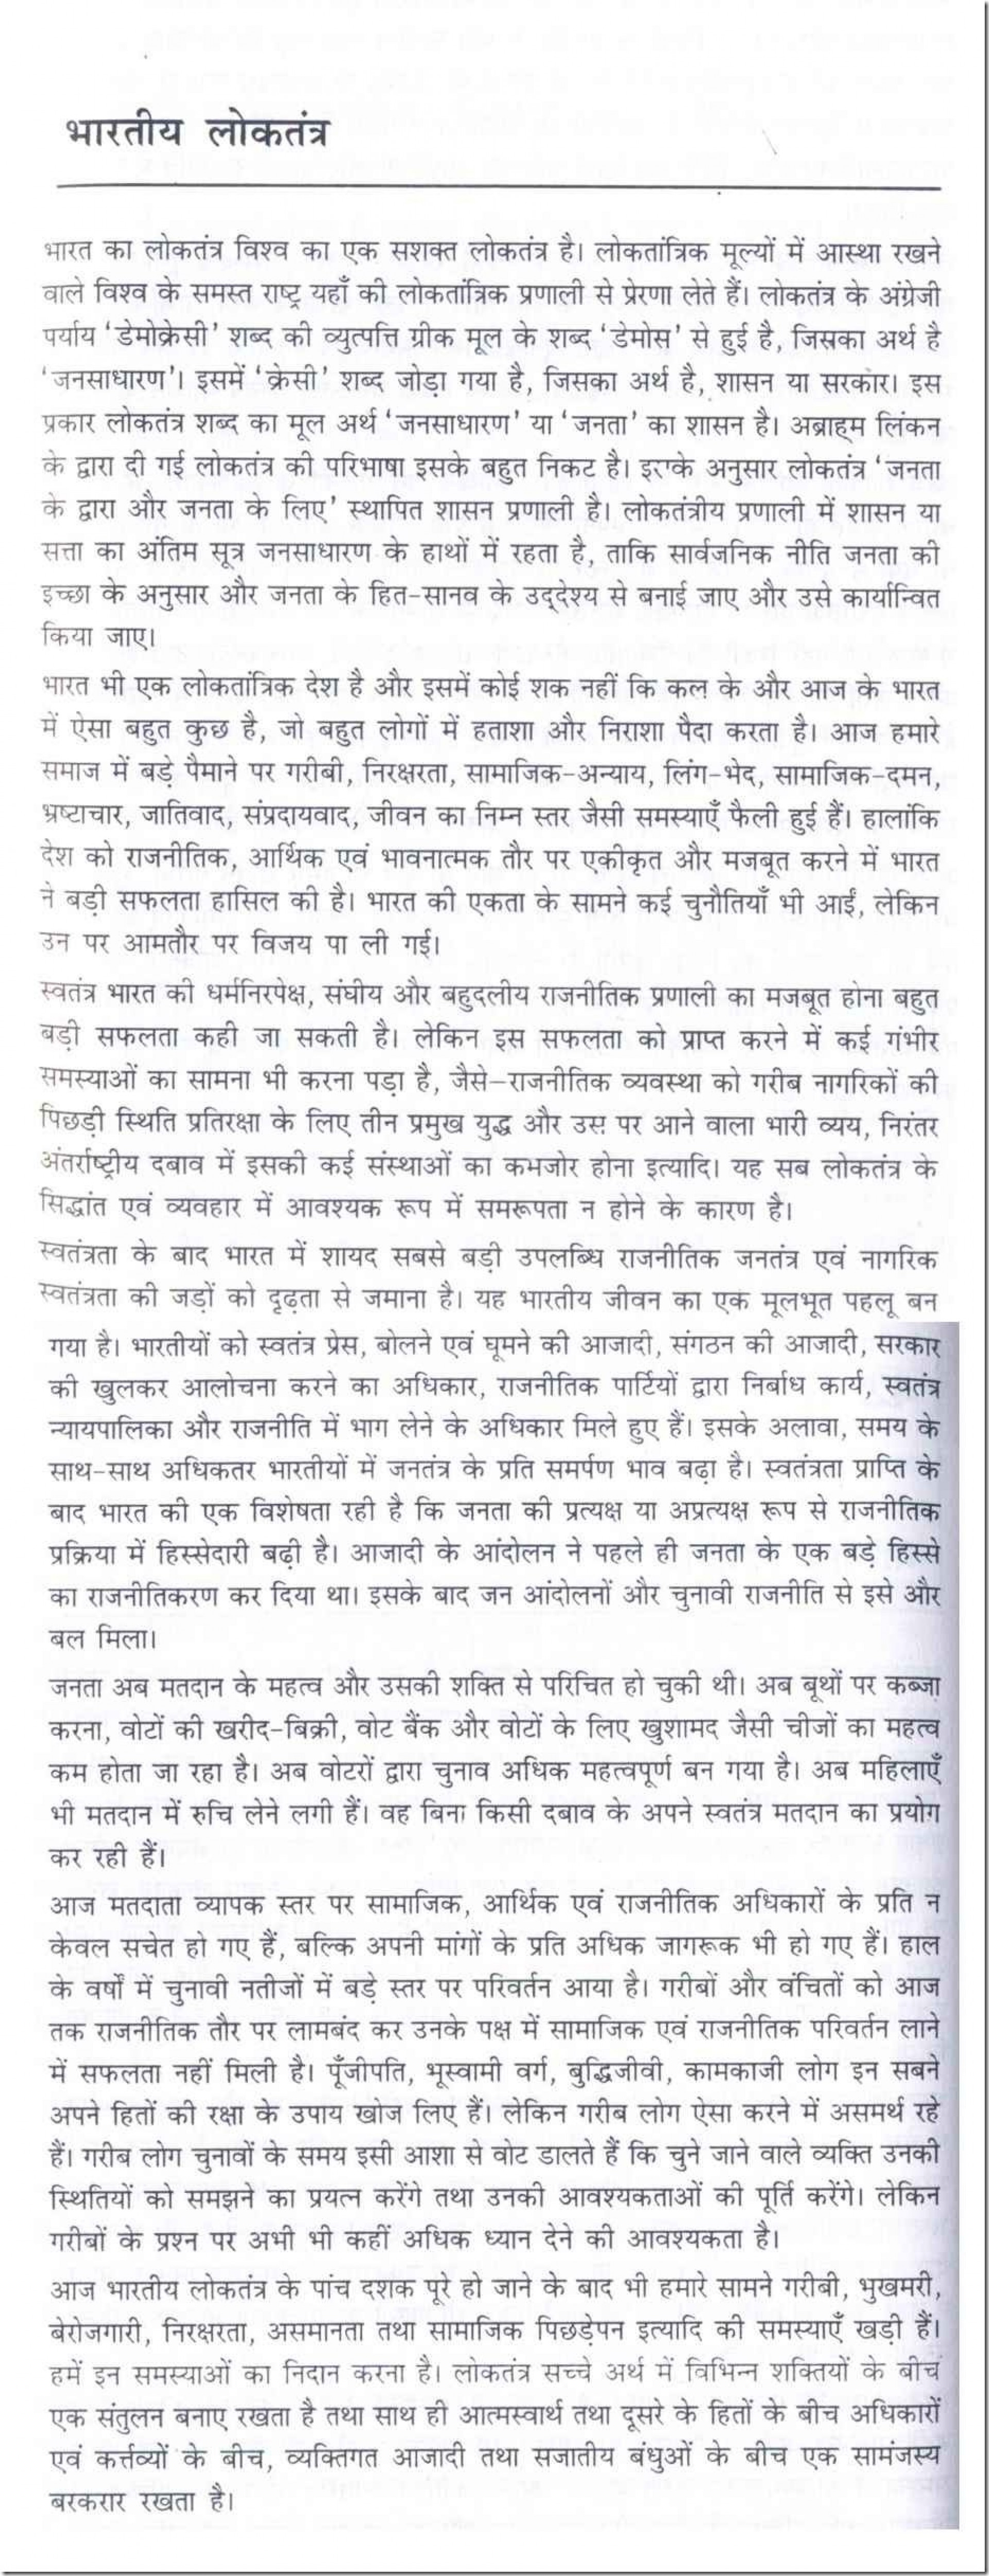 006 Essay Example 10042 Thumb The Importance Of Fearsome Voting In Marathi Democracy Hindi English 1920